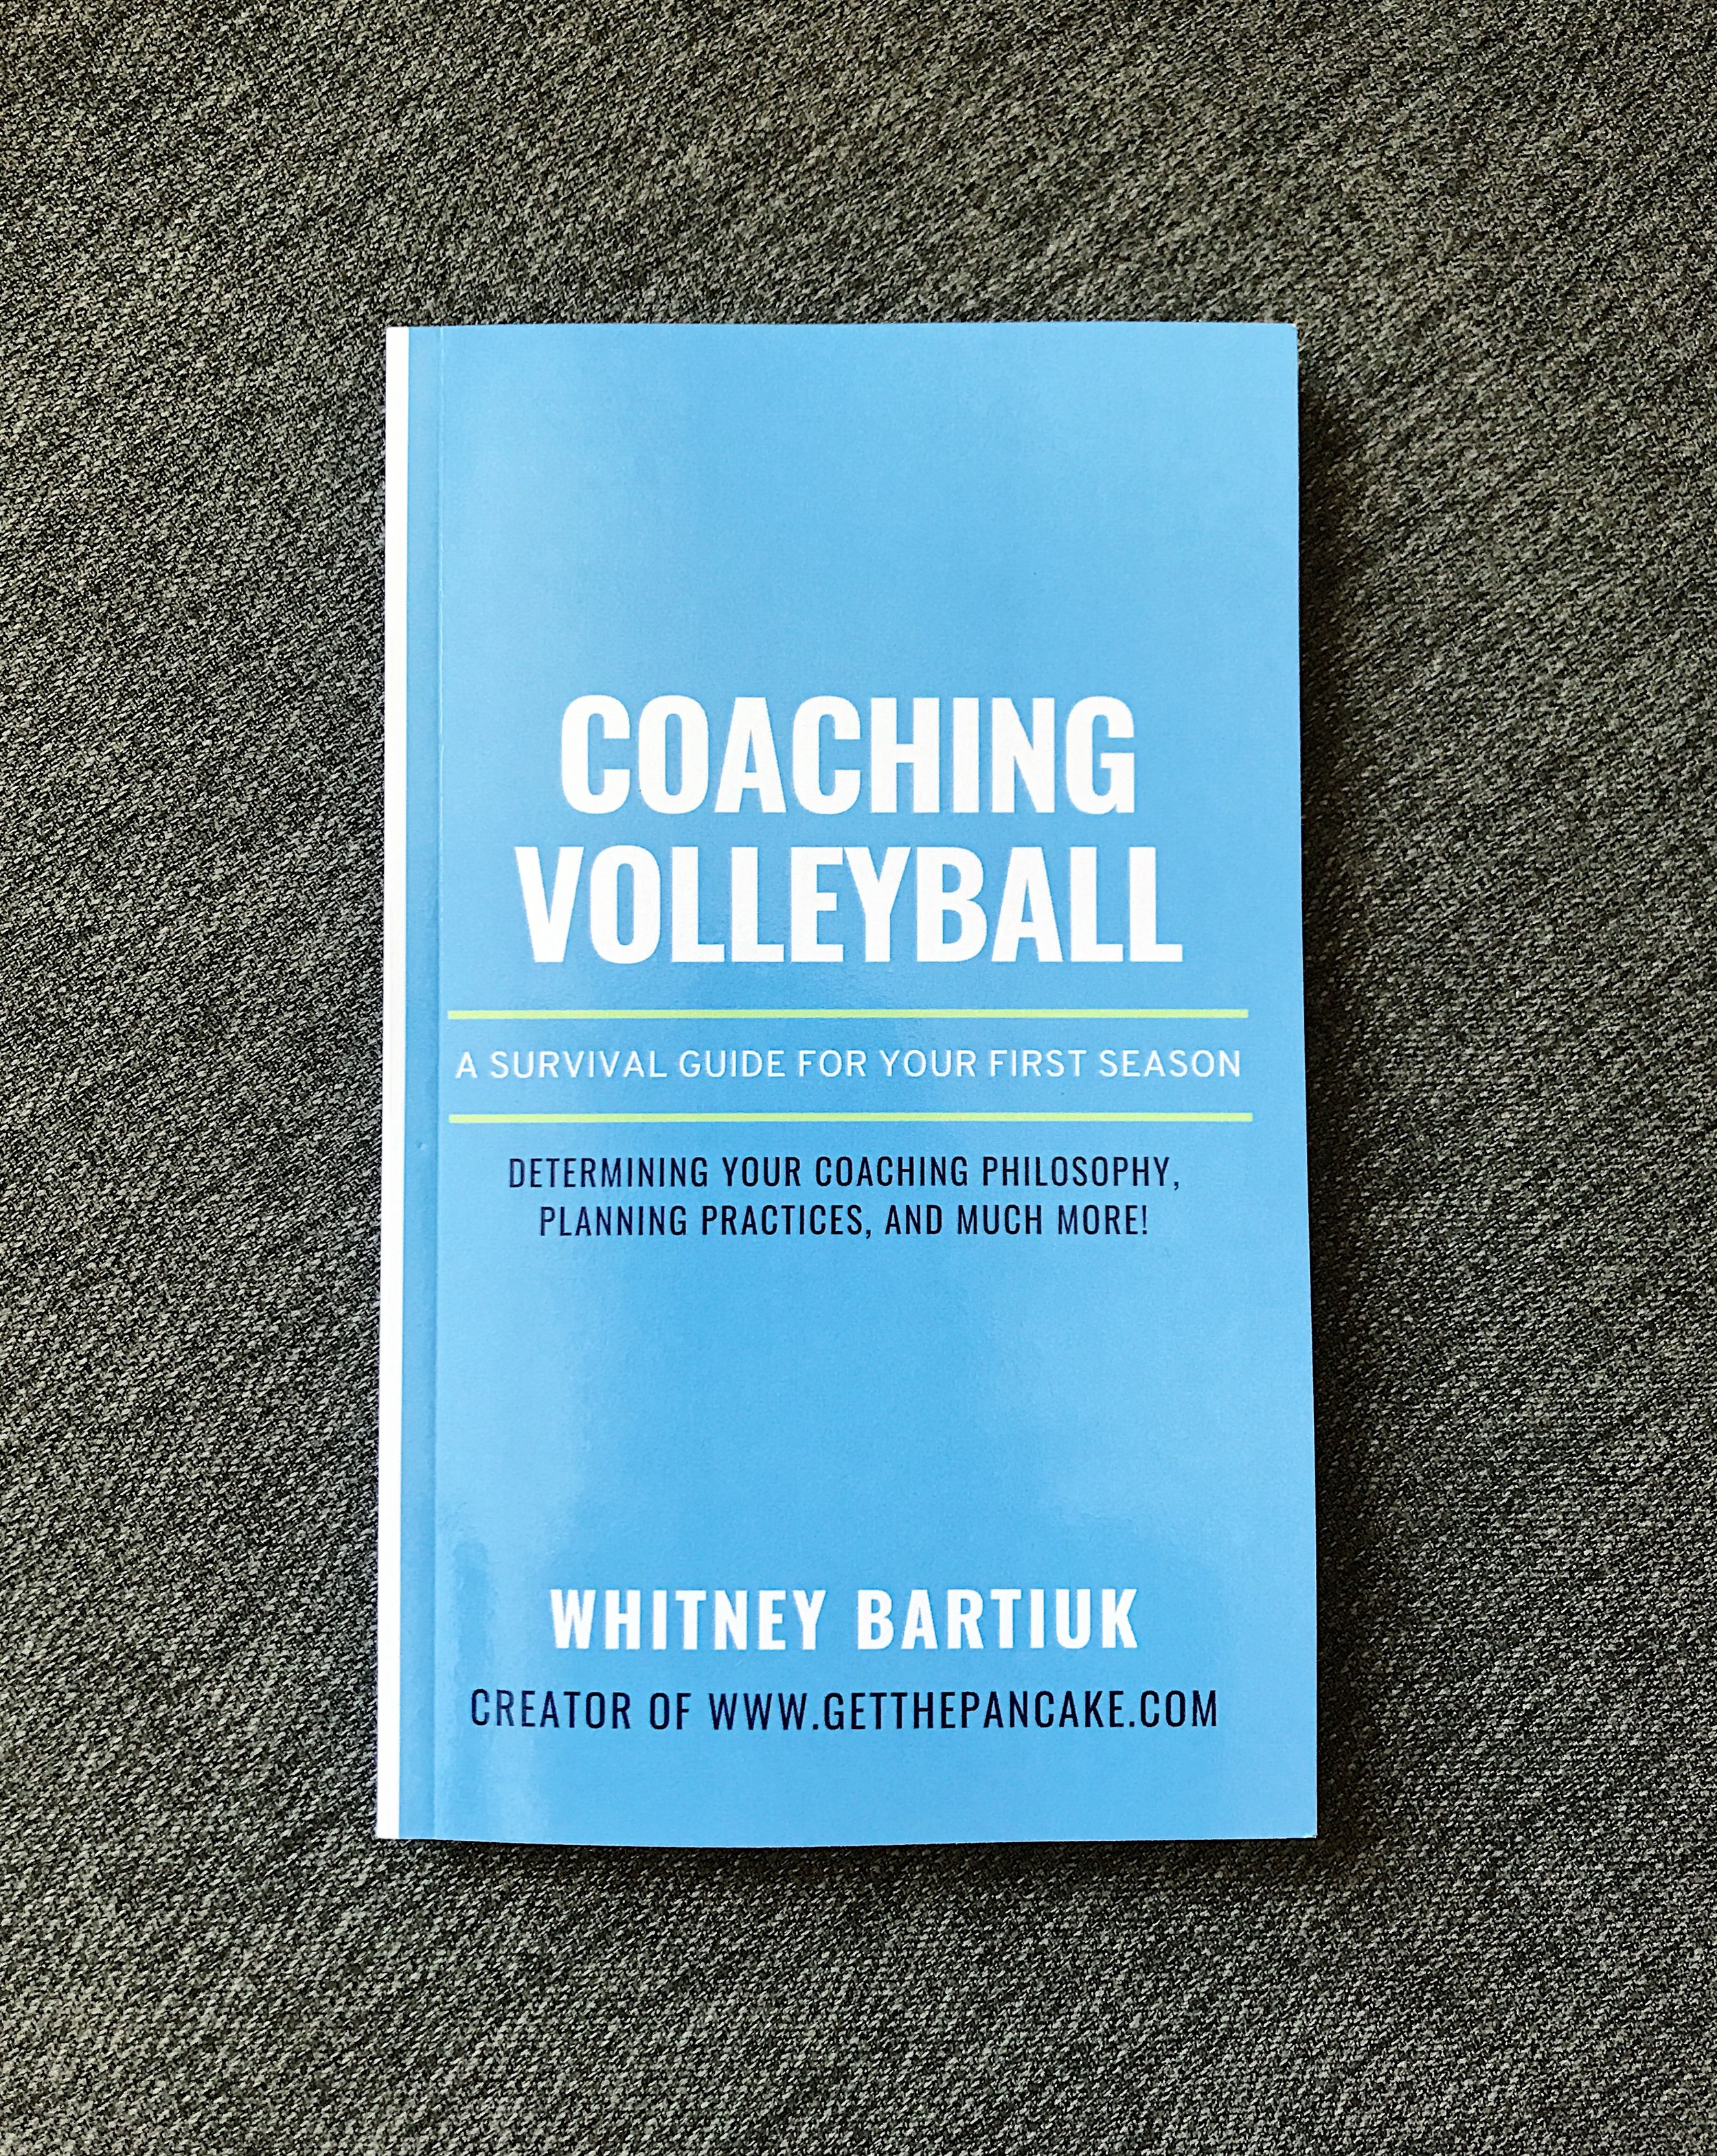 """Learn more about the coaching book which reached #6 on """"Amazon's Best Sellers"""" list in the """"Volleyball"""" category! - Available exclusively through Amazon."""